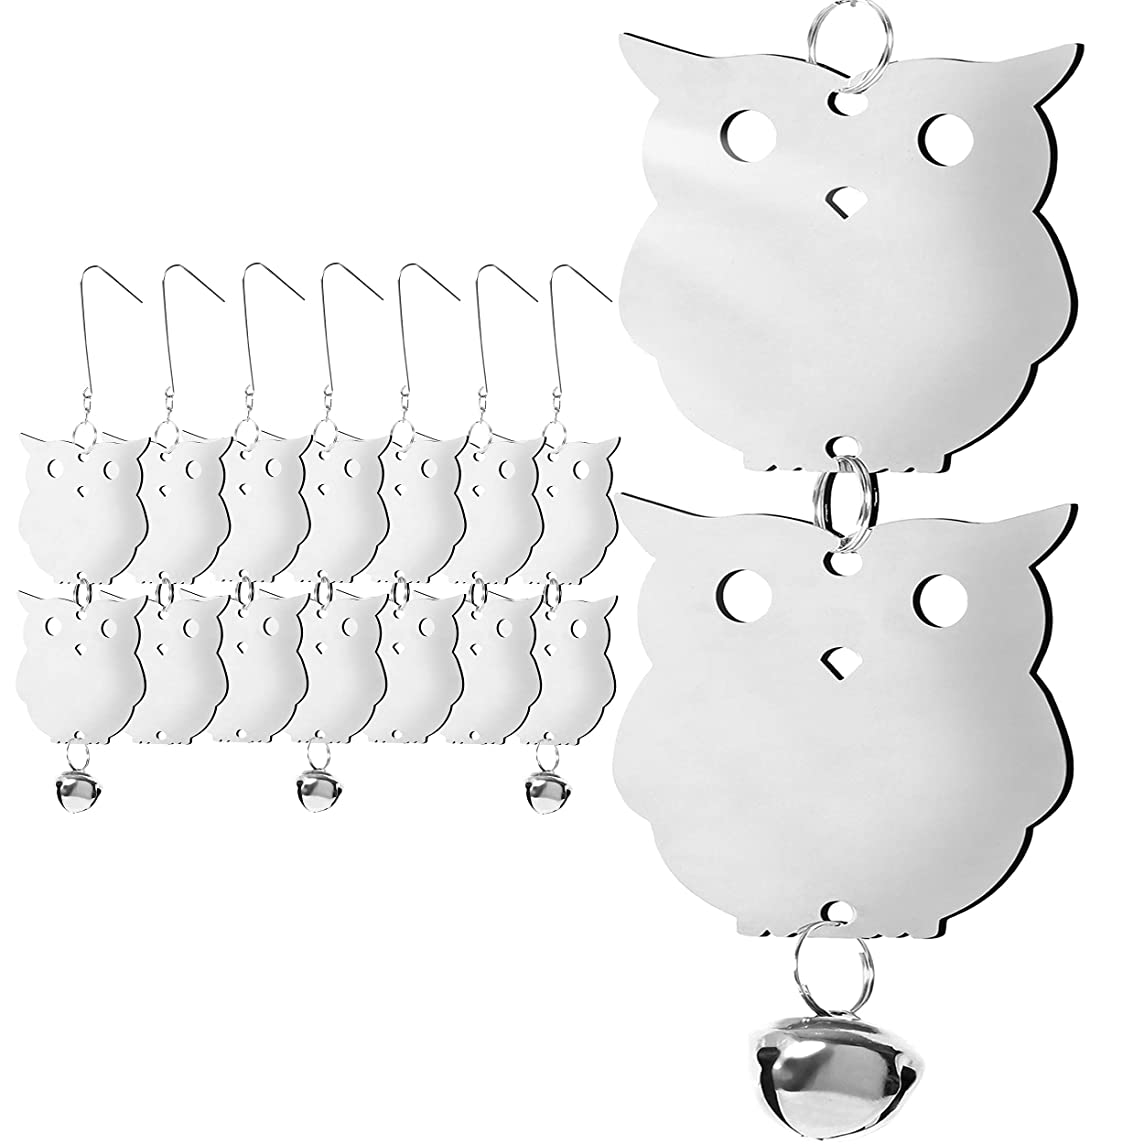 HOMESCAPE CREATIONS Stainless Steel Bird Repellent Reflective Scare Discs - Hanging Owl Decor Deterrent Control Device for Woodpeckers and Pigeons / 16 Piece Set / 4 Bells